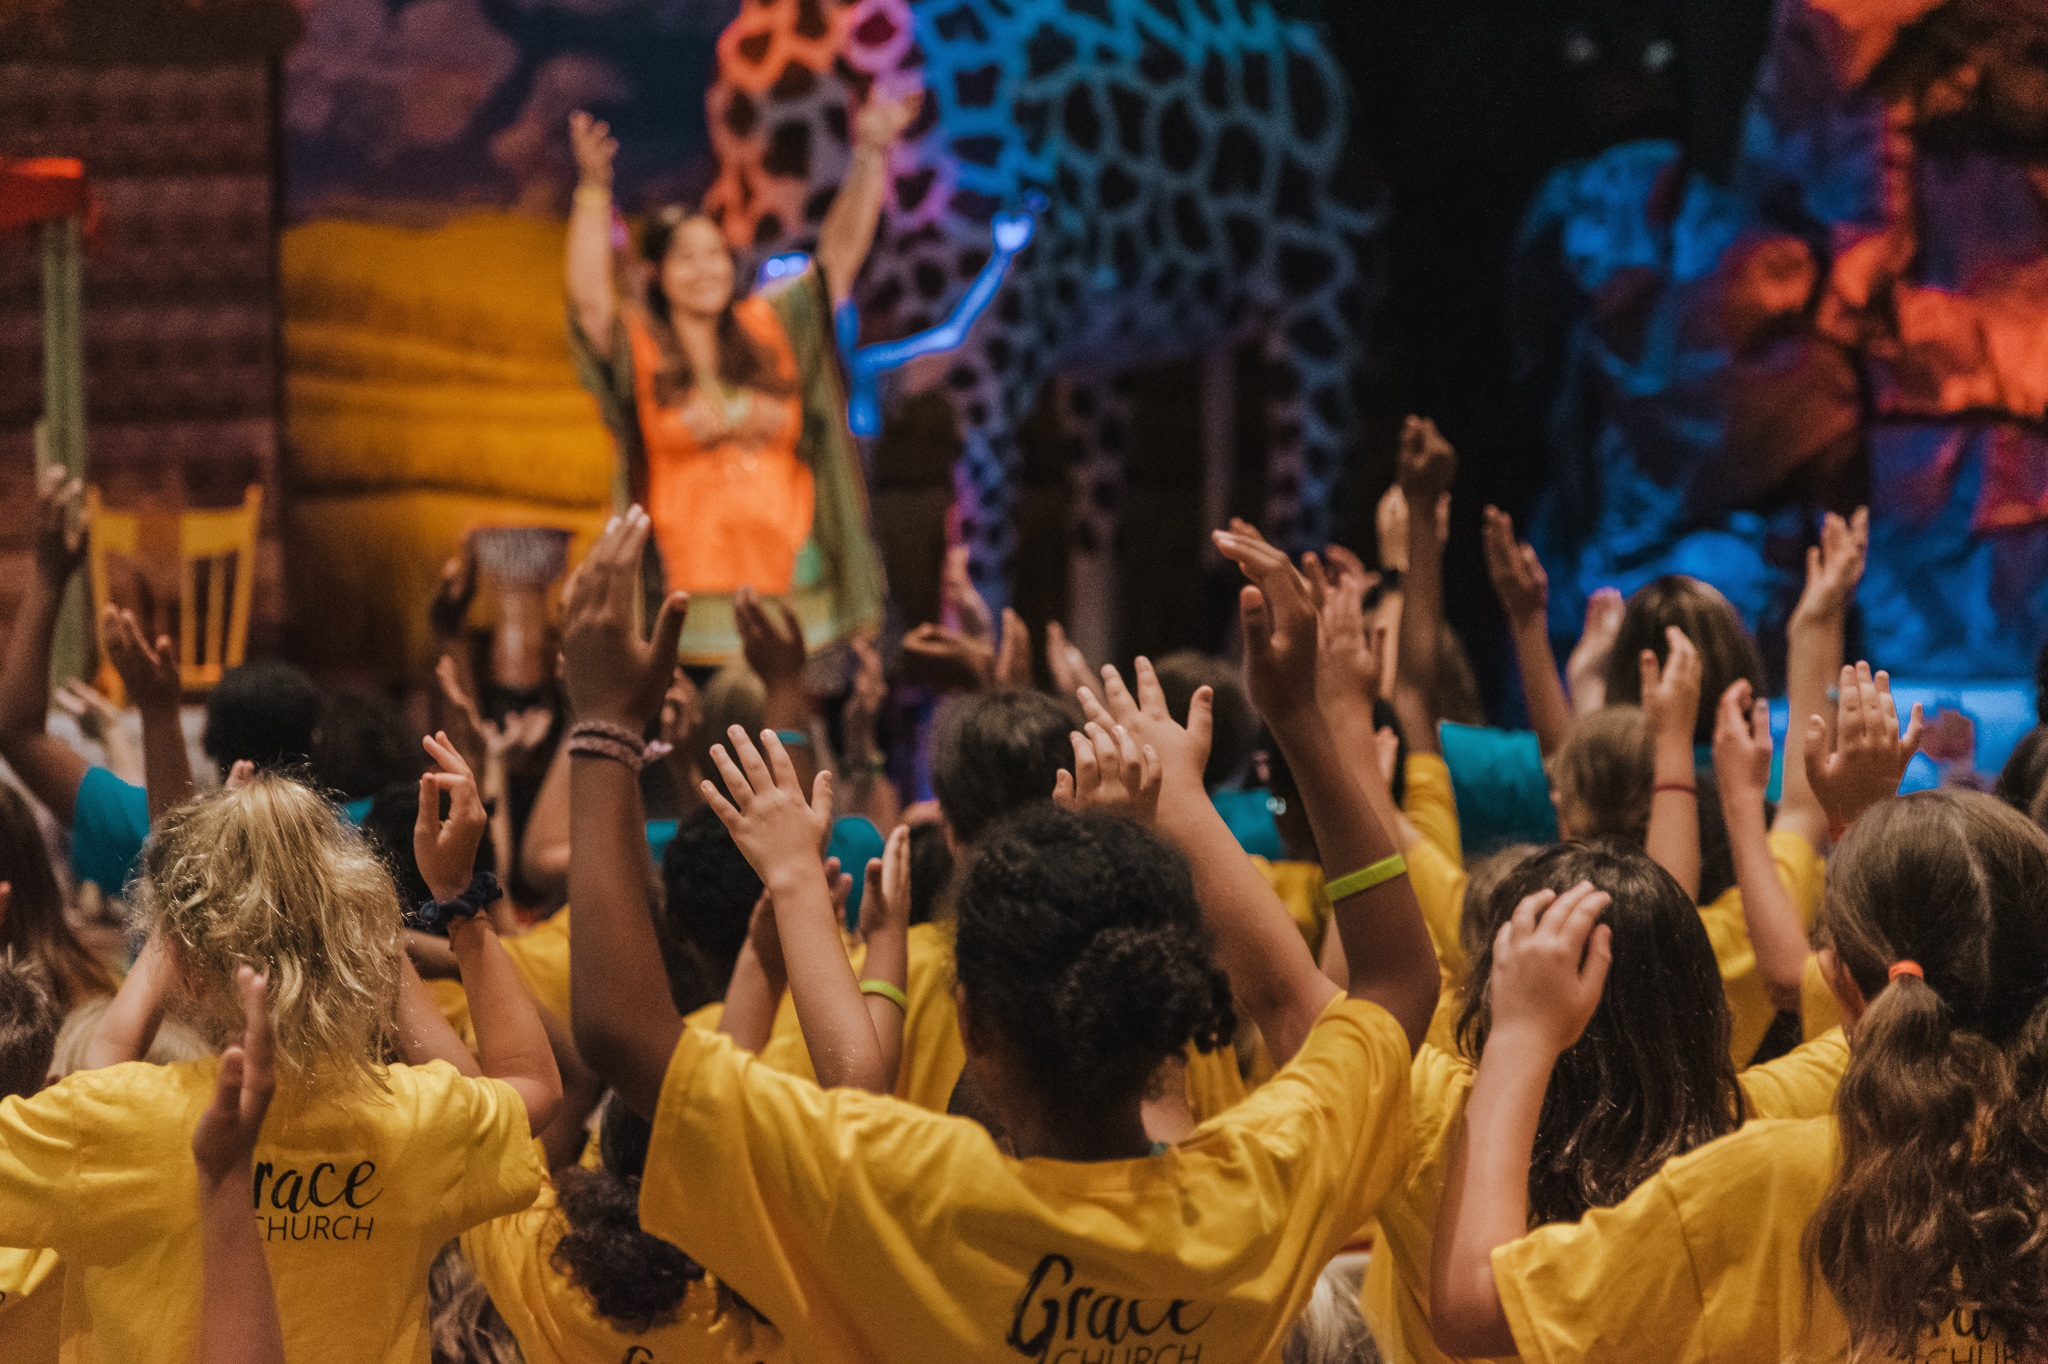 VACATION BIBLE SCHOOL - Every summer in July we host a week long VBS program for children from the church and the community.